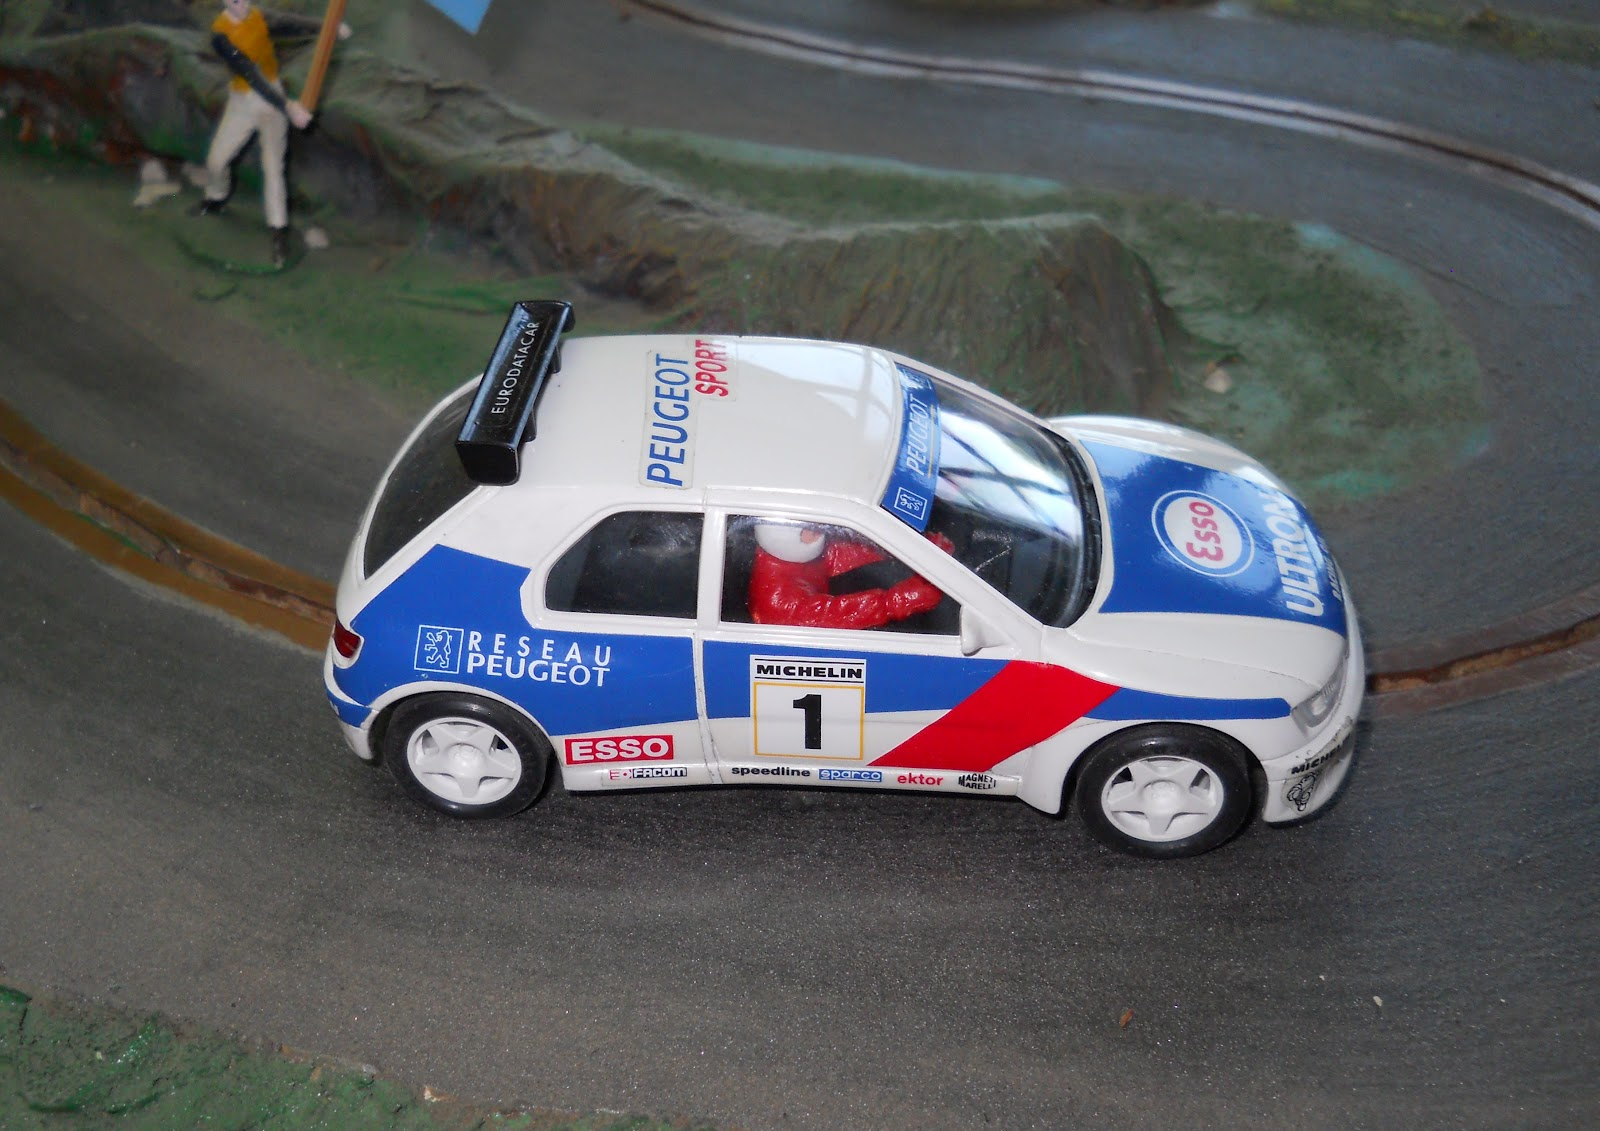 Peugeot slot 306 casino portal online shop from the worlds largest selection and best deals for peugeot slot cars shop with this ninco 50122 132 slot car is a model the peugeot 306 wrc car fandeluxe Images